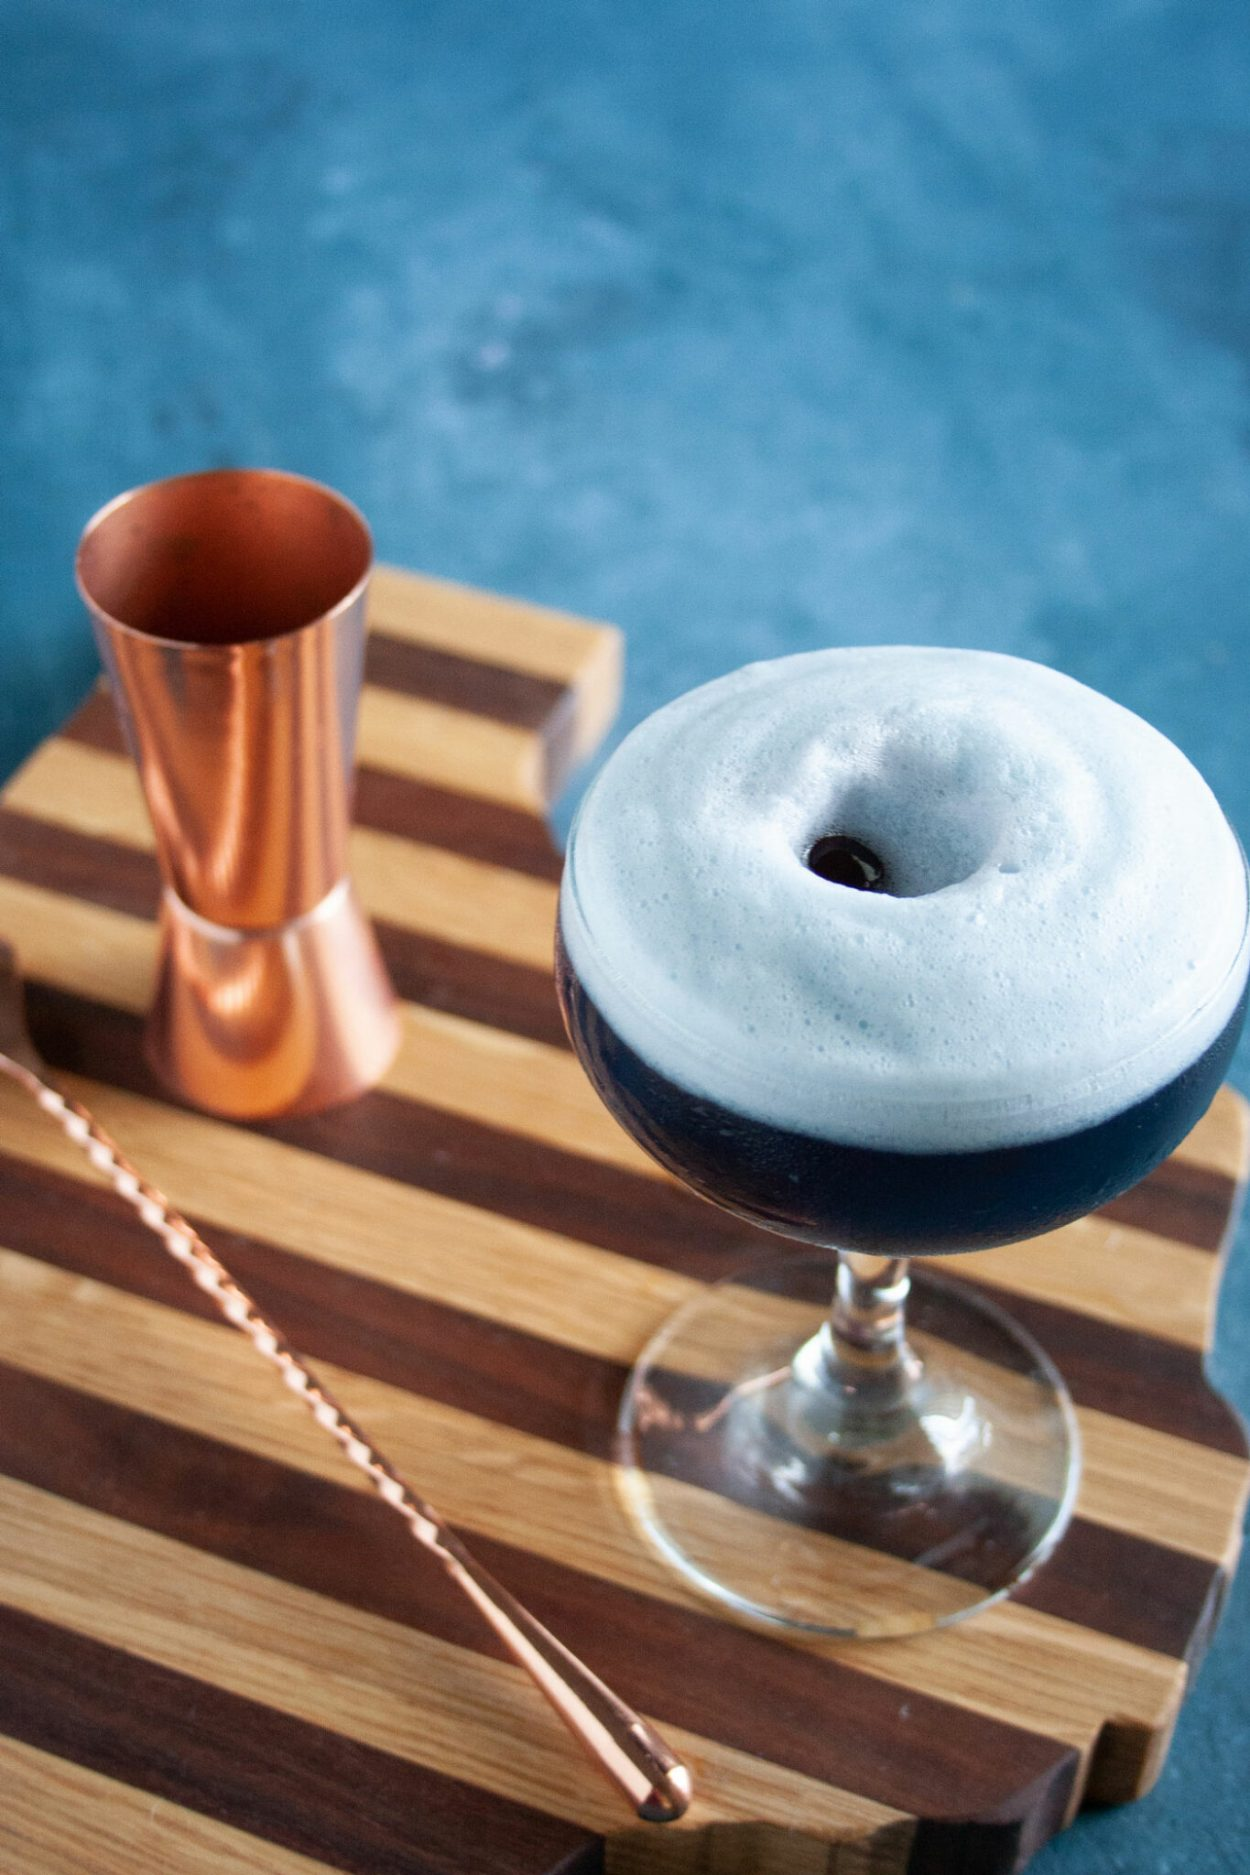 A cherry and lime martini cocktail with an egg white foam head to resemble the clouds of a hurricane. Drop 2 Luxardo maraschino cherries down the center of the egg white foam to get the hurricane eye effect. | Elle Talk | #vodka #coupe #cocktail #cocktailrecipe #drinkrecipe #recipeoftheday